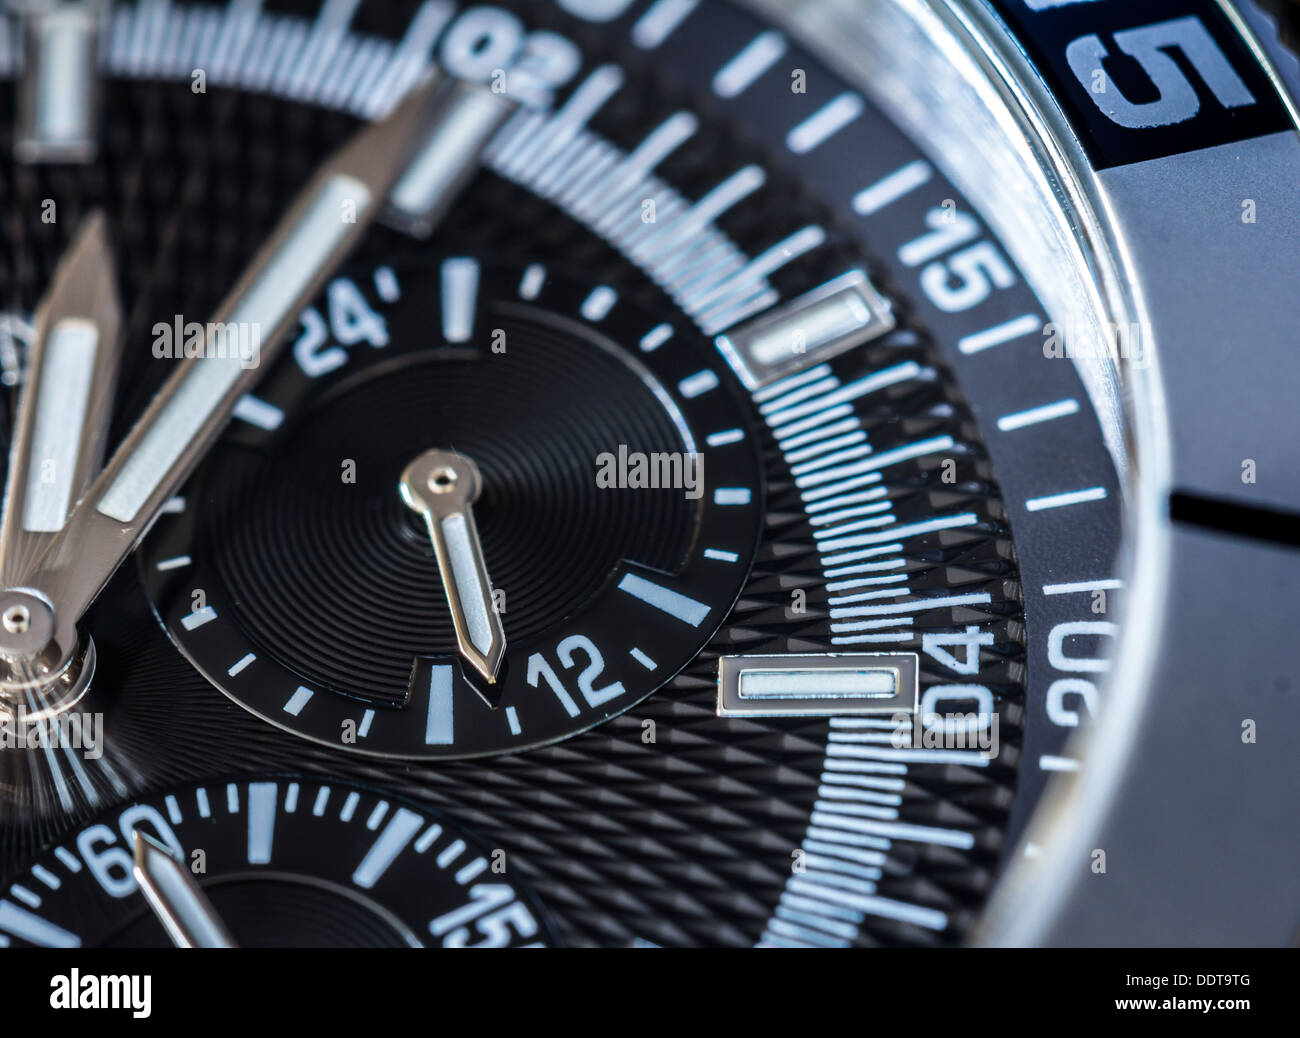 Chronograph detail. Selective focus, shallow depth of field. - Stock Image